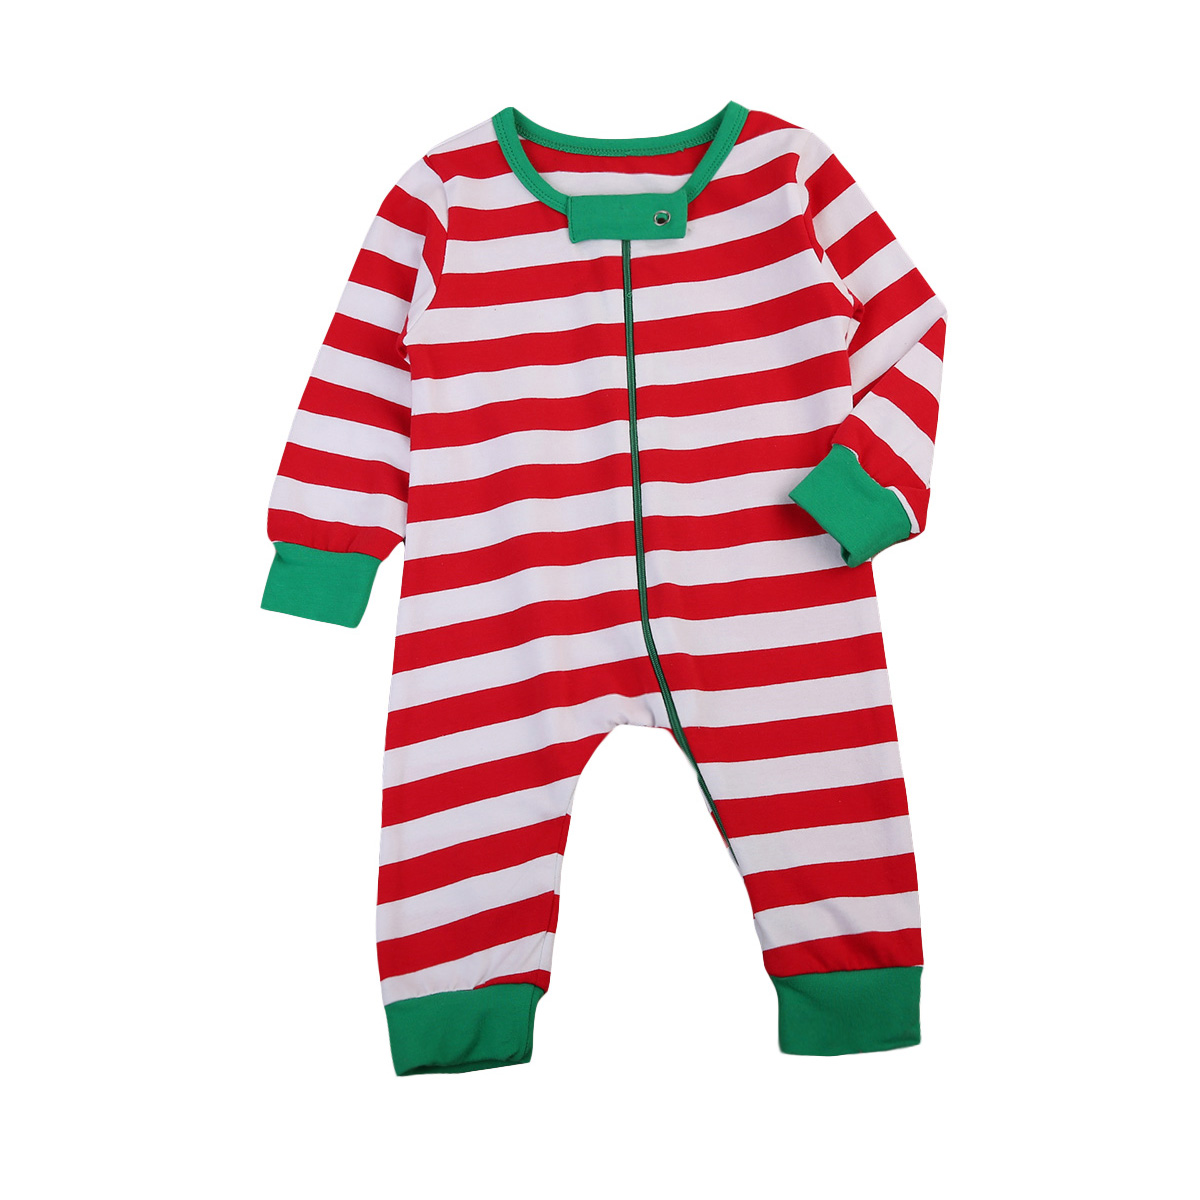 Merry Christmas Newborn Baby Boys Girls Infant Clothes Cotton Long Sleeve Stripes Romper Xmas Clothes Outfits Clothing Sunsuit newborn infant baby girls boys long sleeve clothing 3d ear romper cotton jumpsuit playsuit bunny outfits one piecer clothes kid